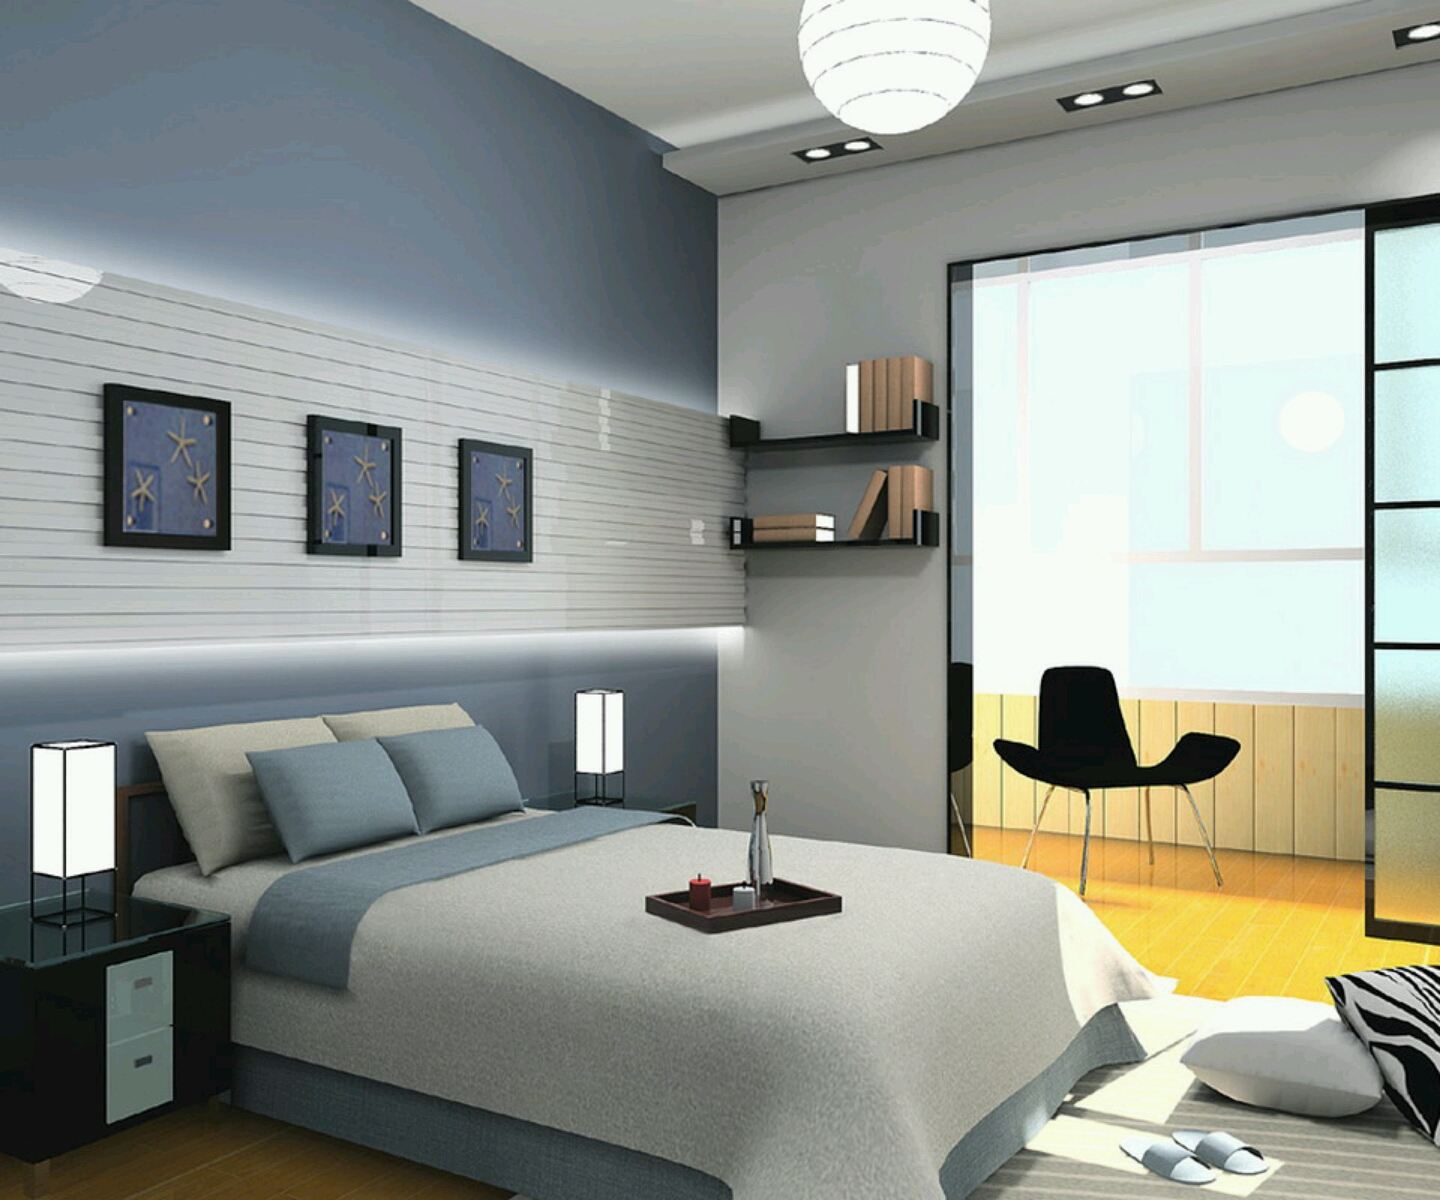 Modern homes bedrooms designs best bedrooms designs ideas for Best bedroom ideas 2016